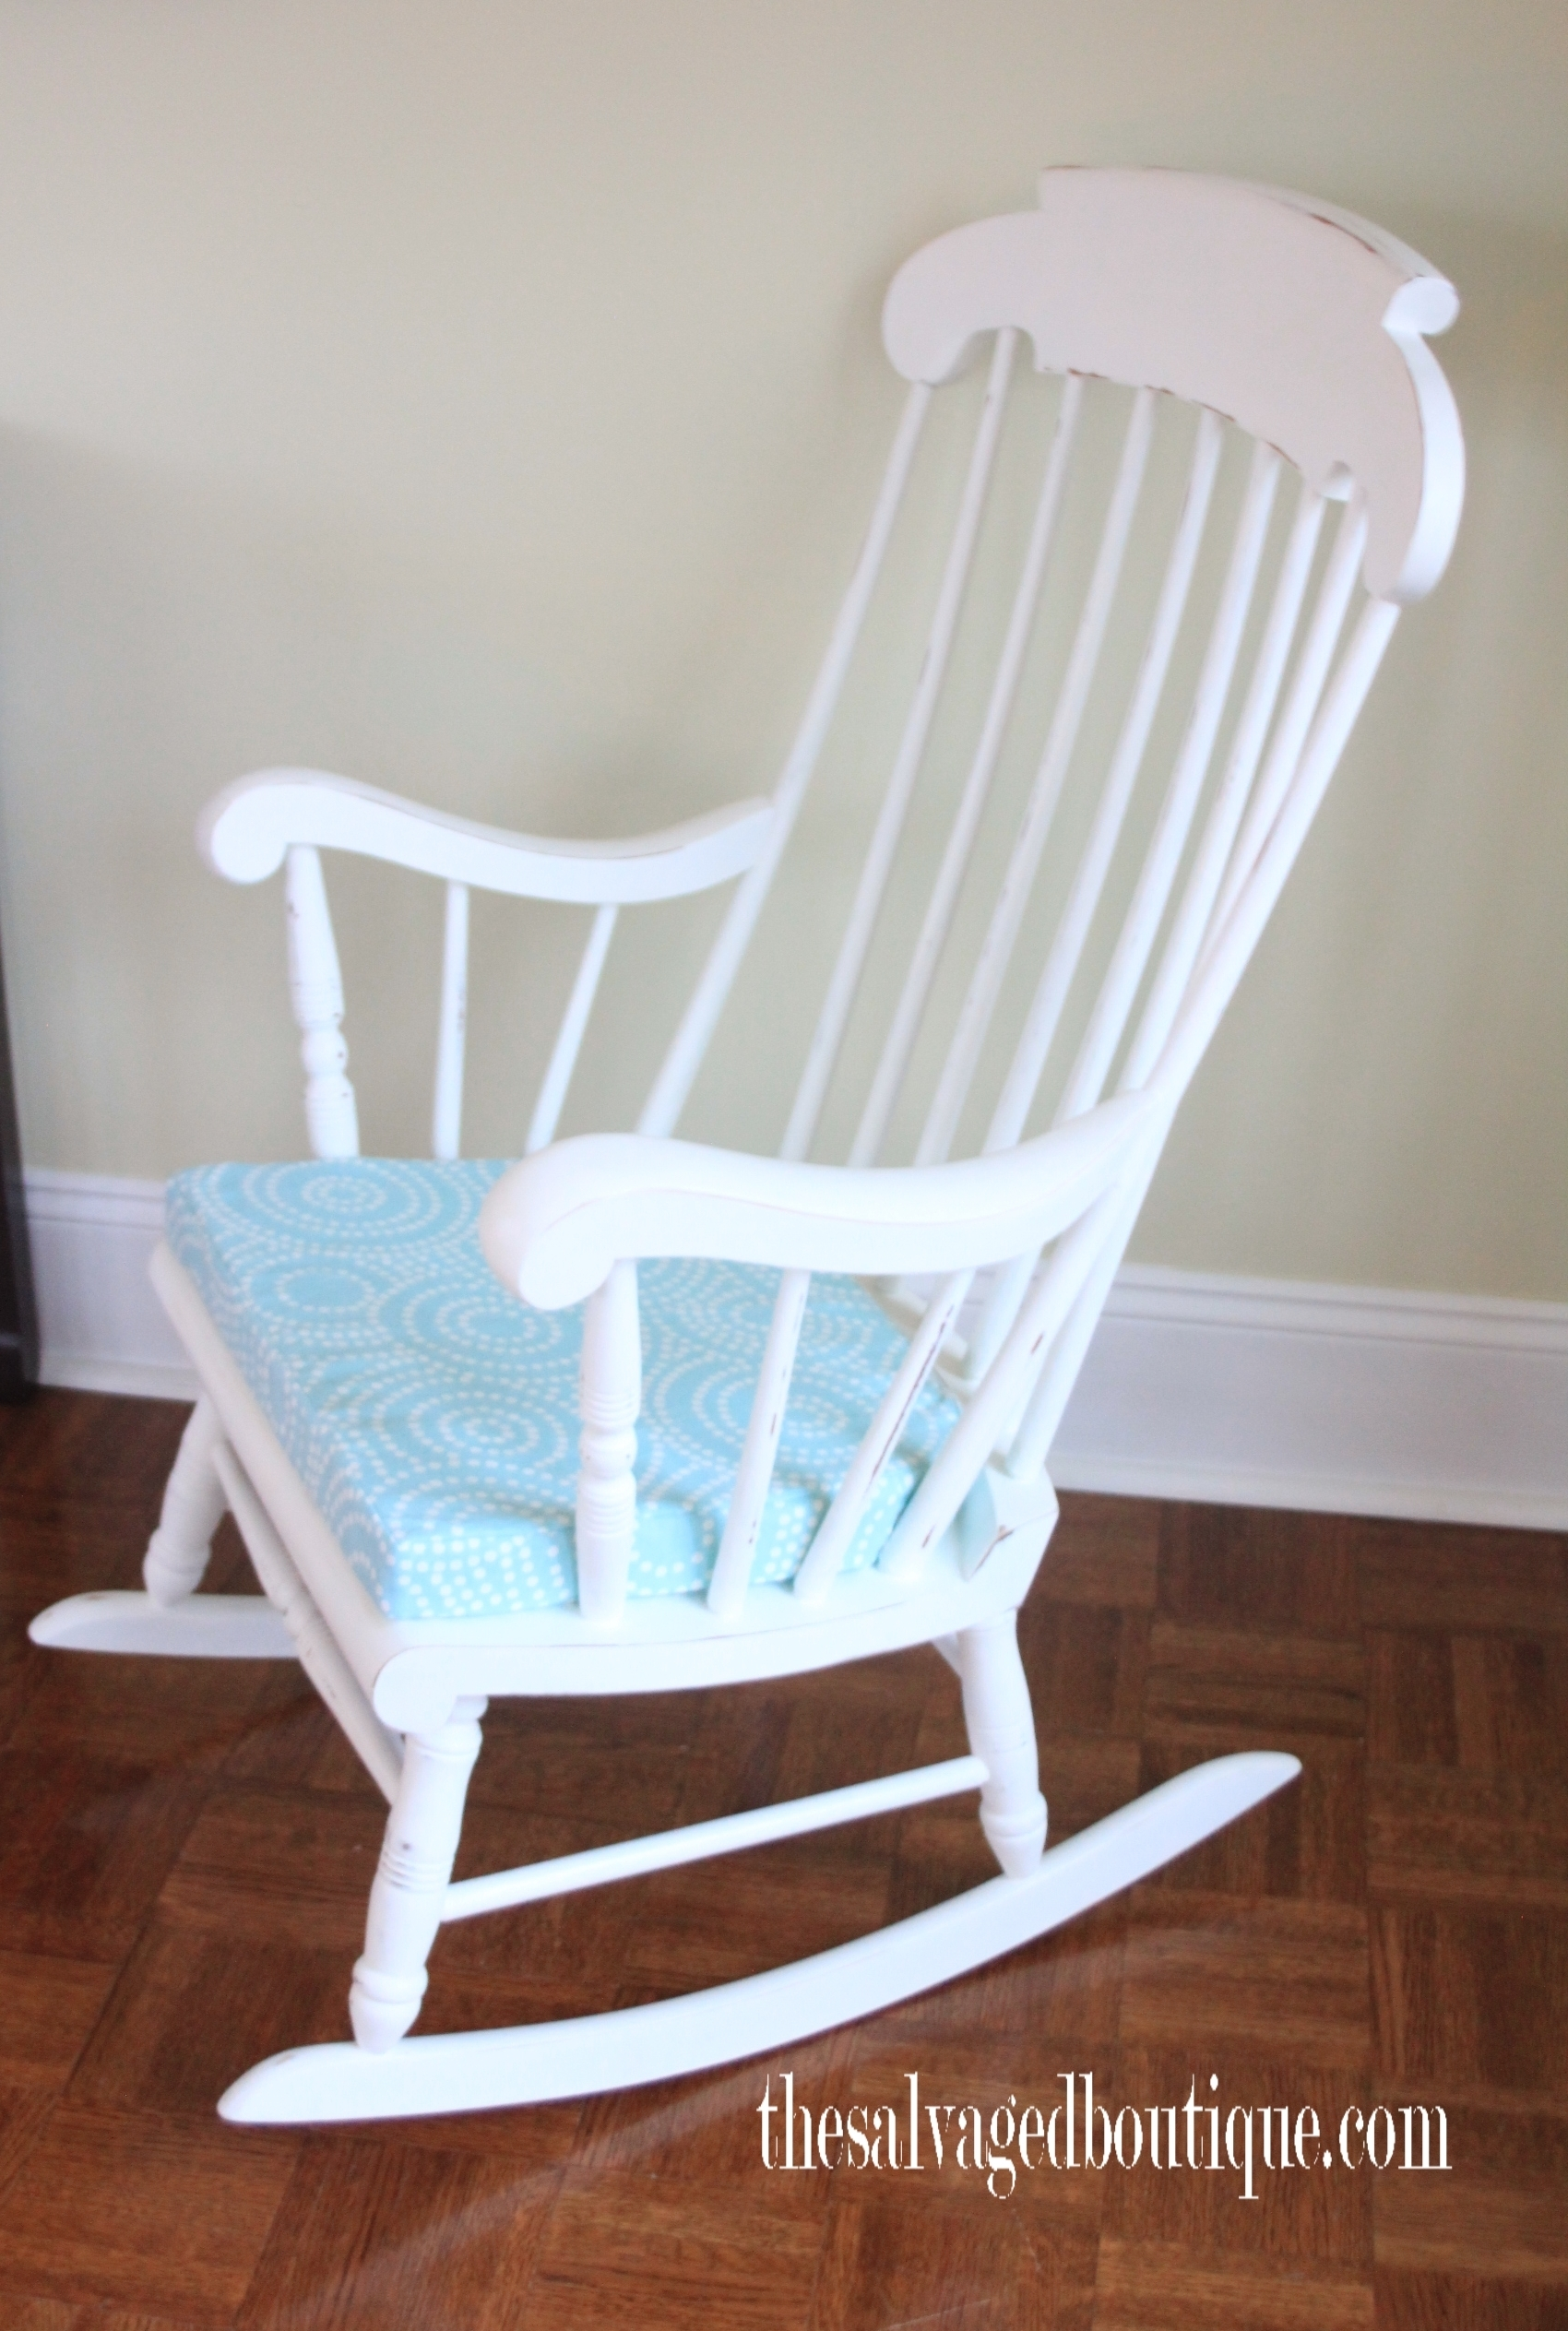 Grandpa's Rocking Chair Brightened Up For New Baby Nursery (View 11 of 15)